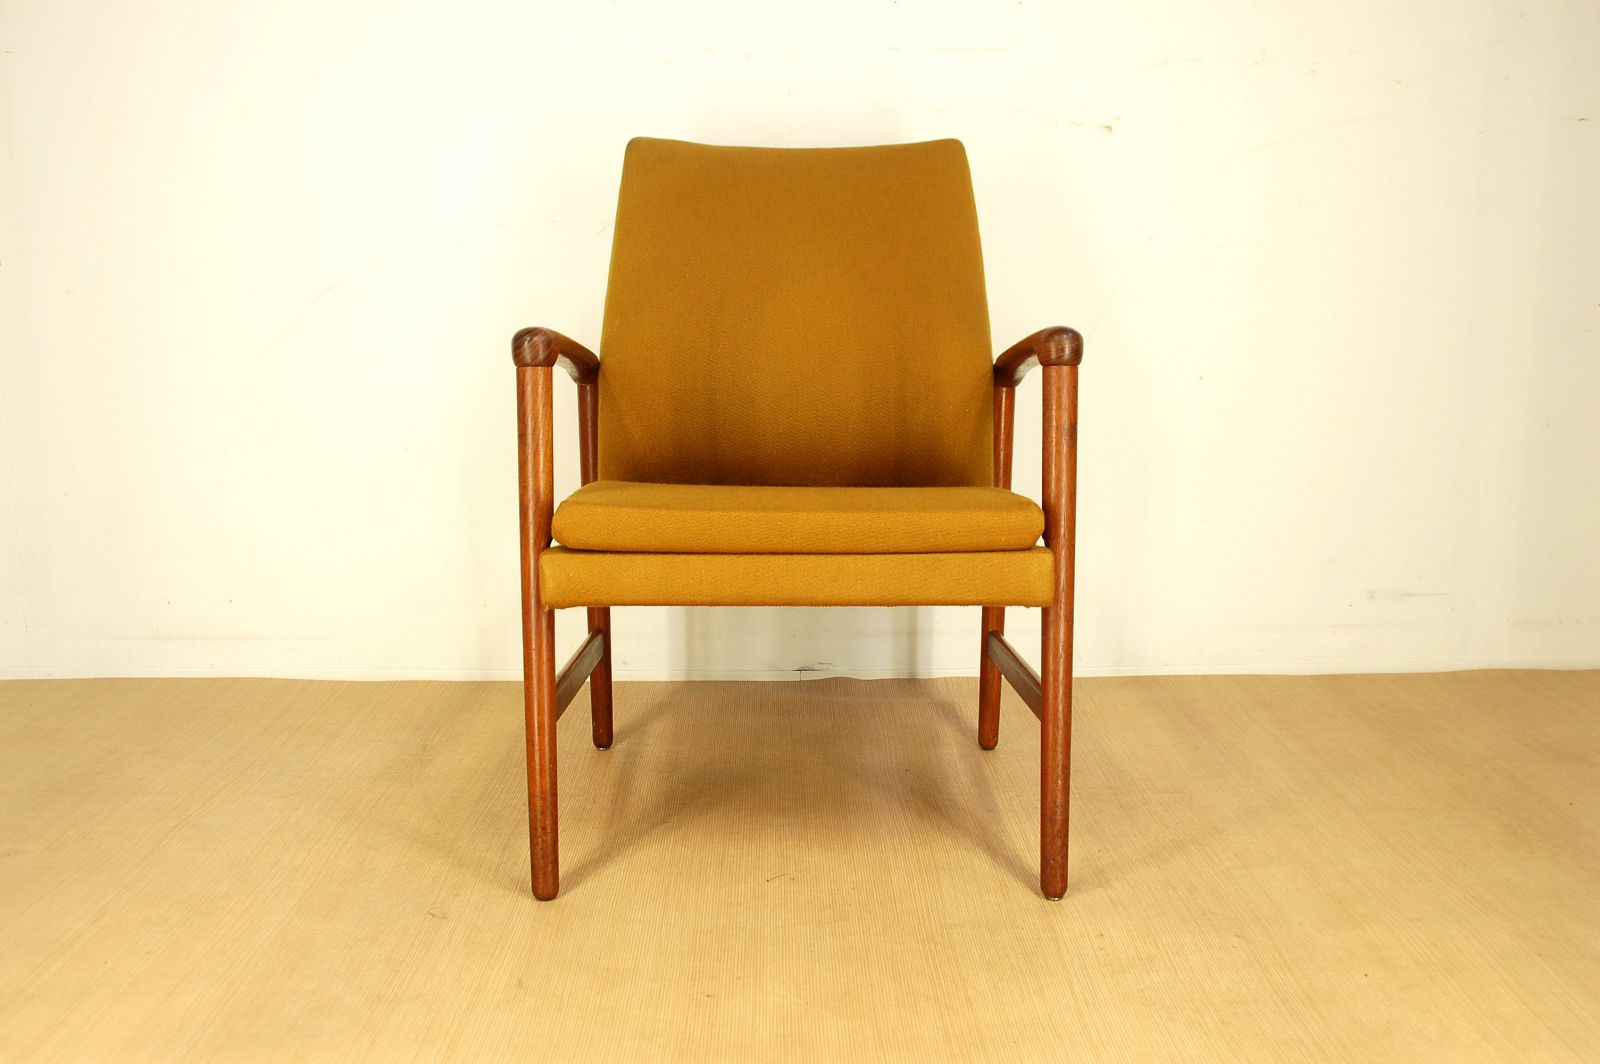 vintage teak armchair from fritz hansen 1950s for sale at. Black Bedroom Furniture Sets. Home Design Ideas